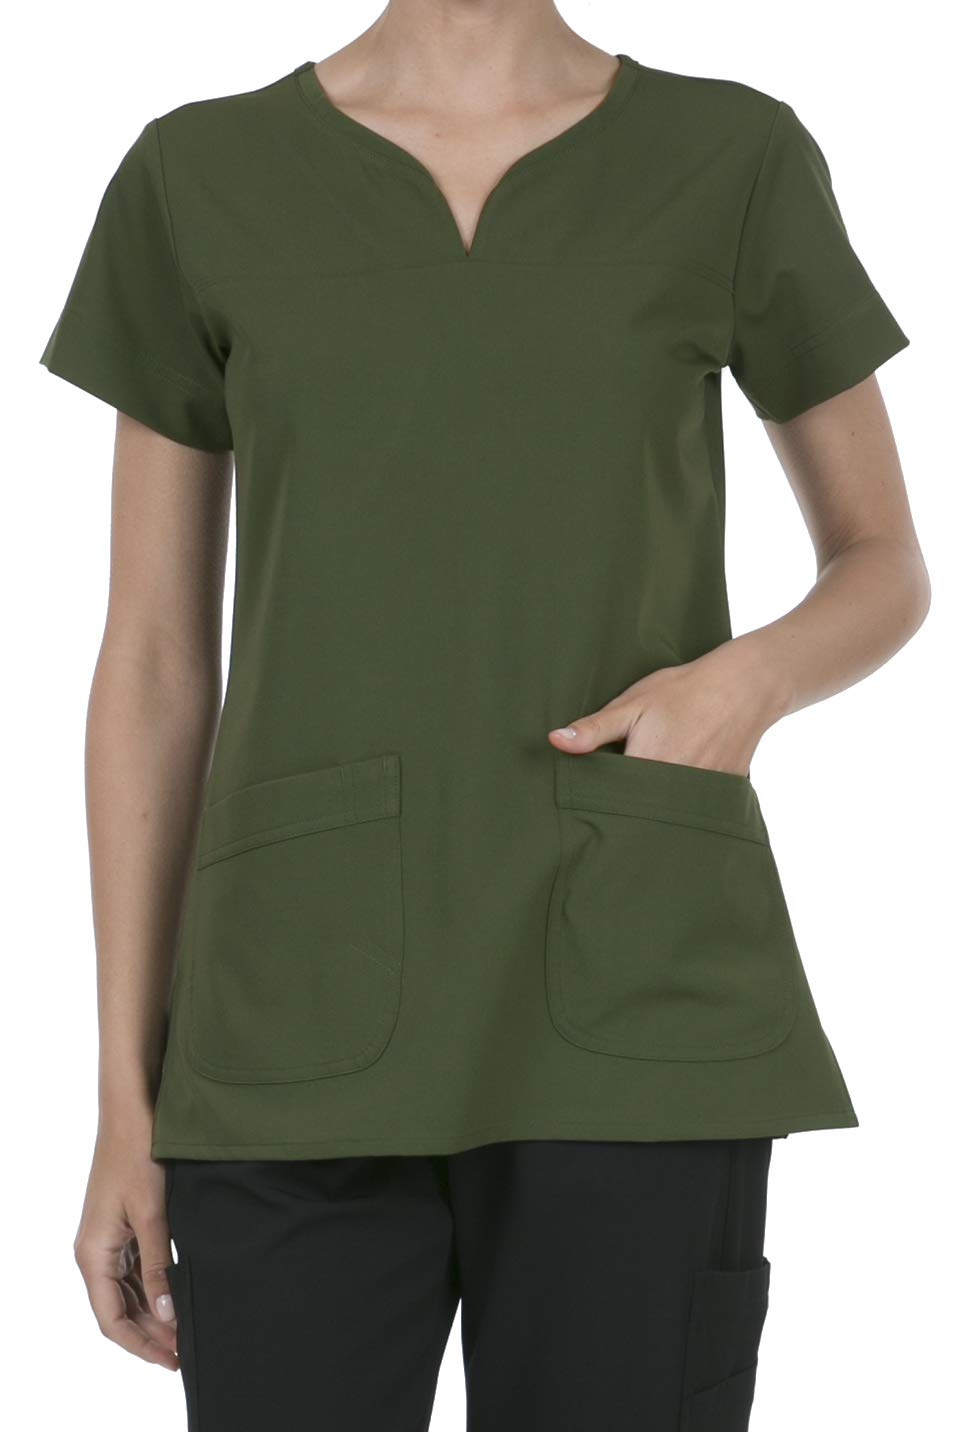 8045 Women's Uniform Scrubs Medical 2 Pocket Scrub Top Olive L by SHOP TIRZAH